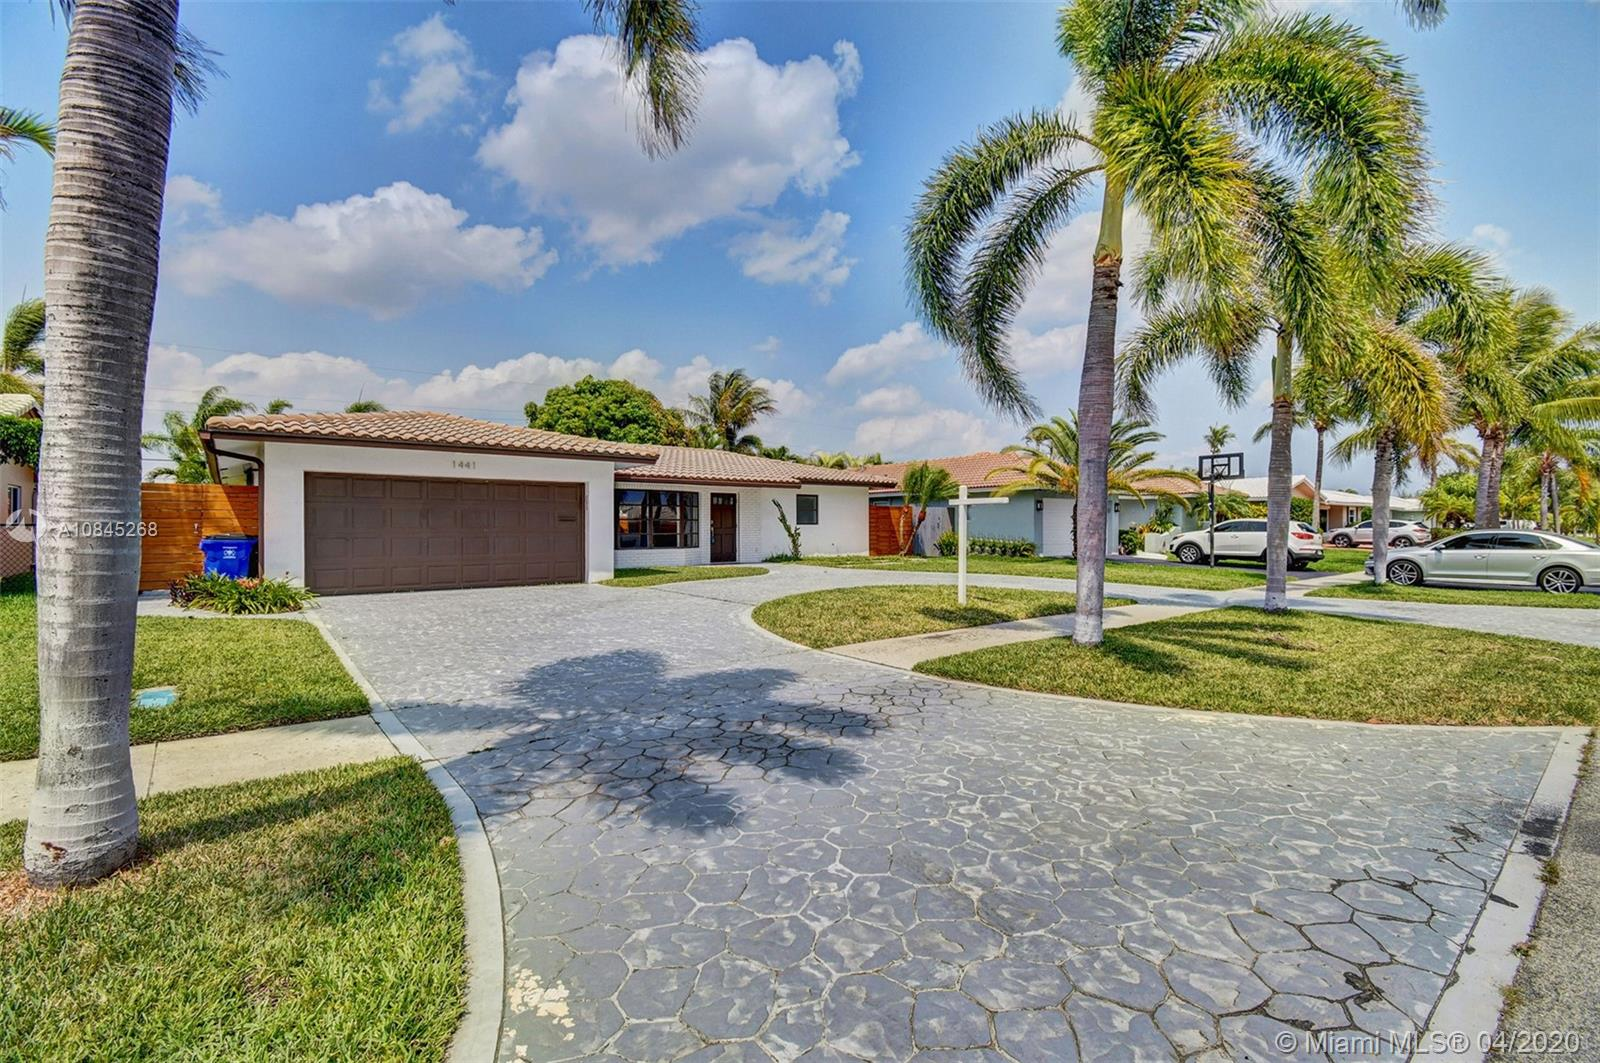 1441 SE 14th Dr Property Photo - Deerfield Beach, FL real estate listing